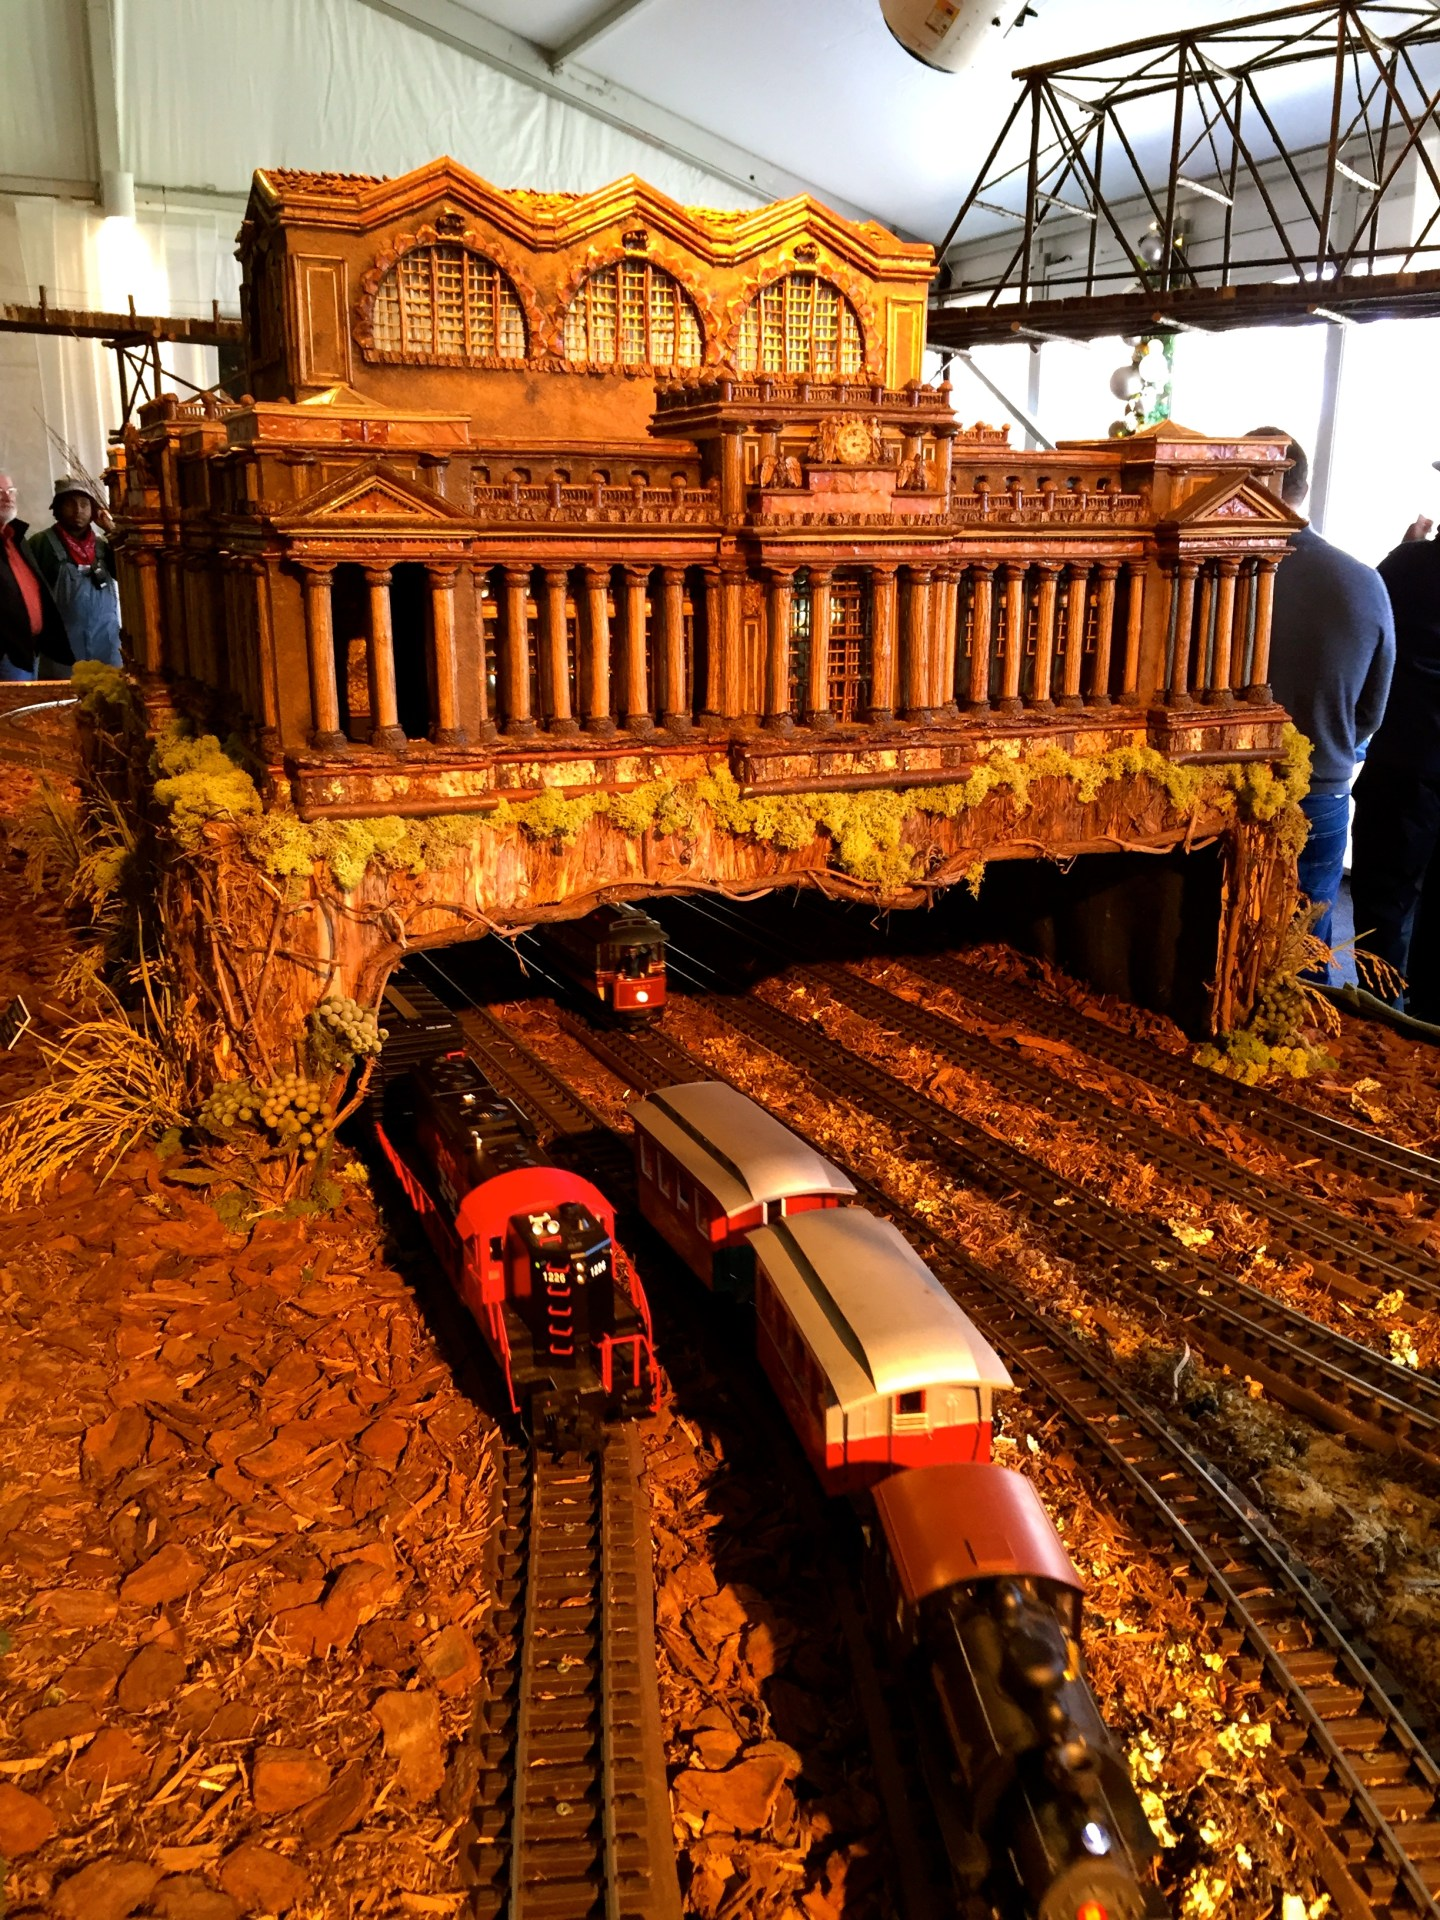 Trains on tracks at the Holiday Train Show at the New York Botanical Garden